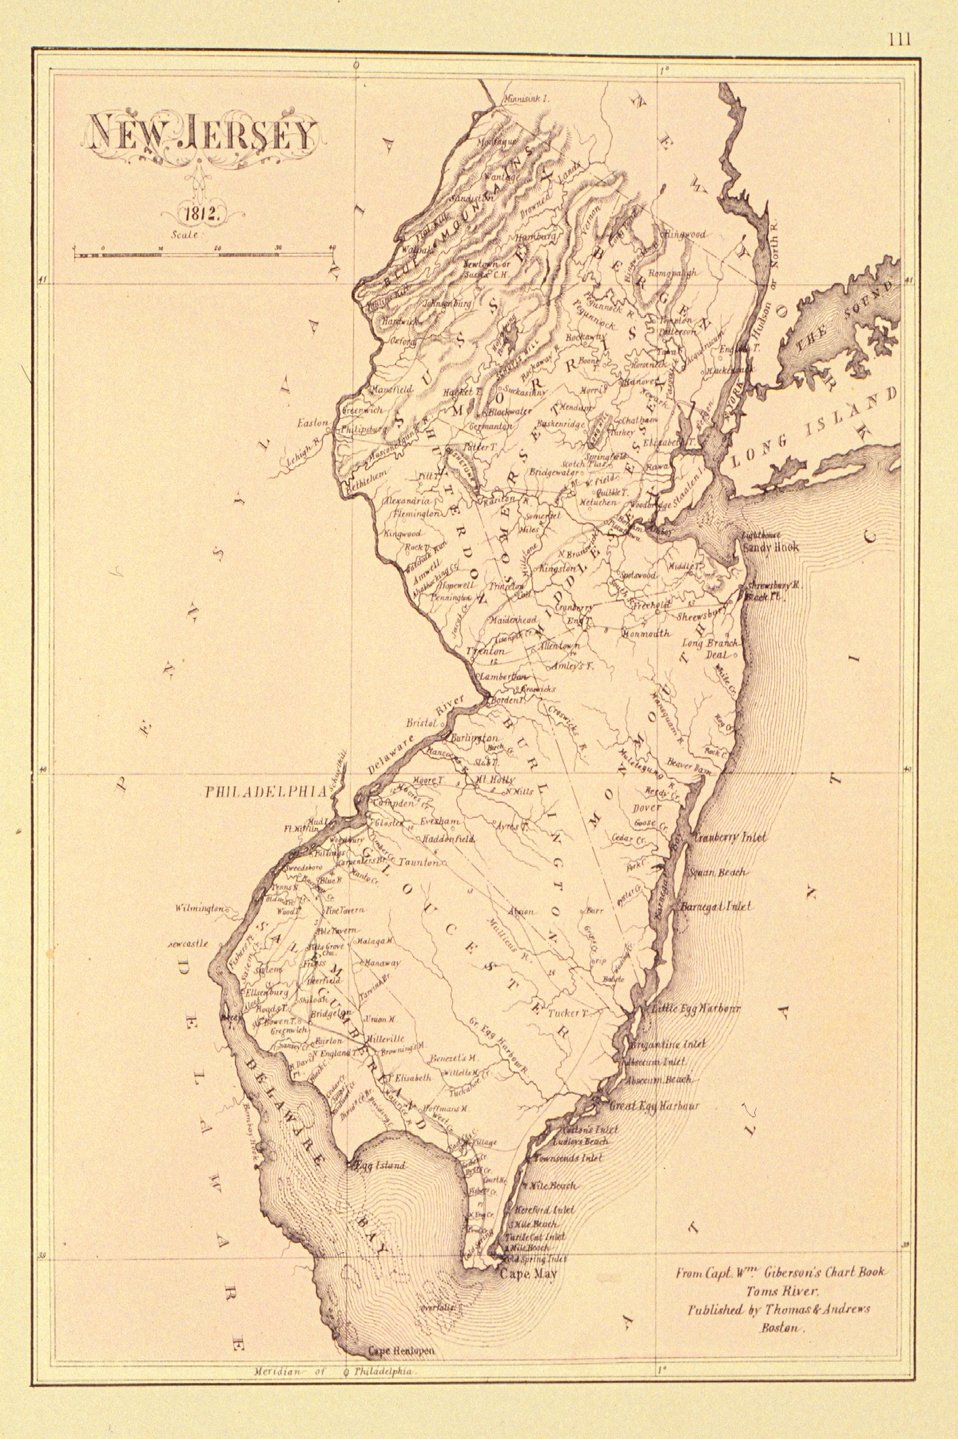 Map of New Jersey dated 1812 in 'Historical and Biographical Atlas of the New Jersey Coast.'